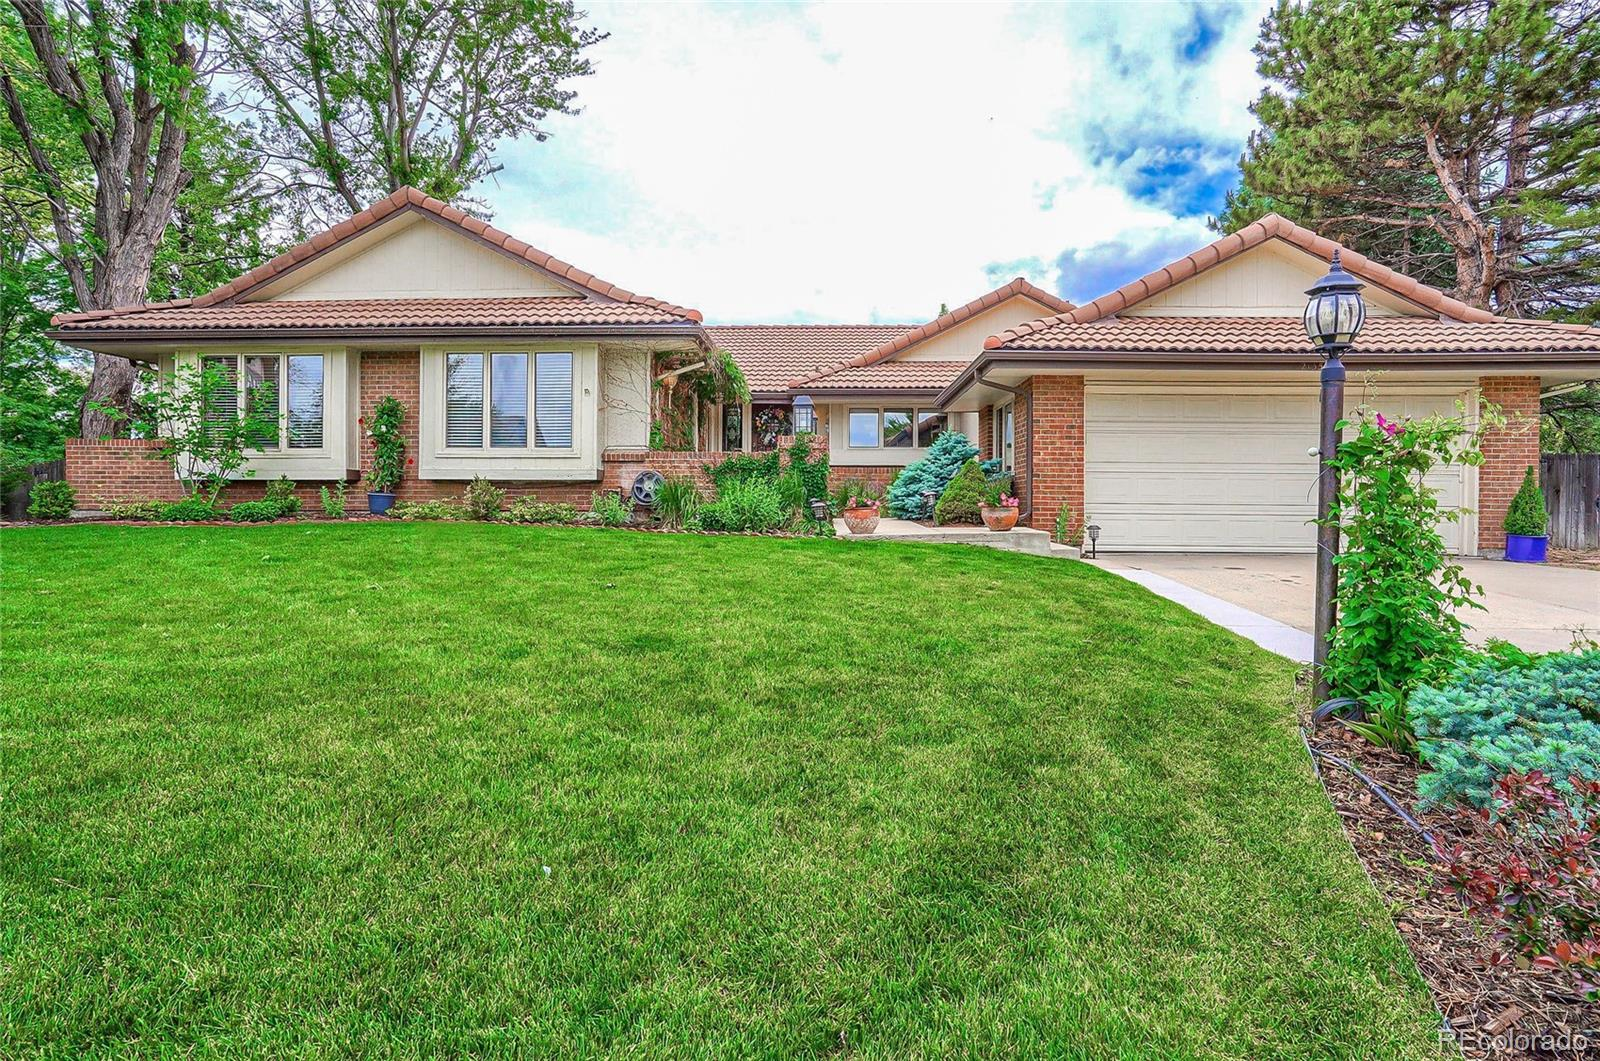 2155 S Owens Court Property Photo - Lakewood, CO real estate listing